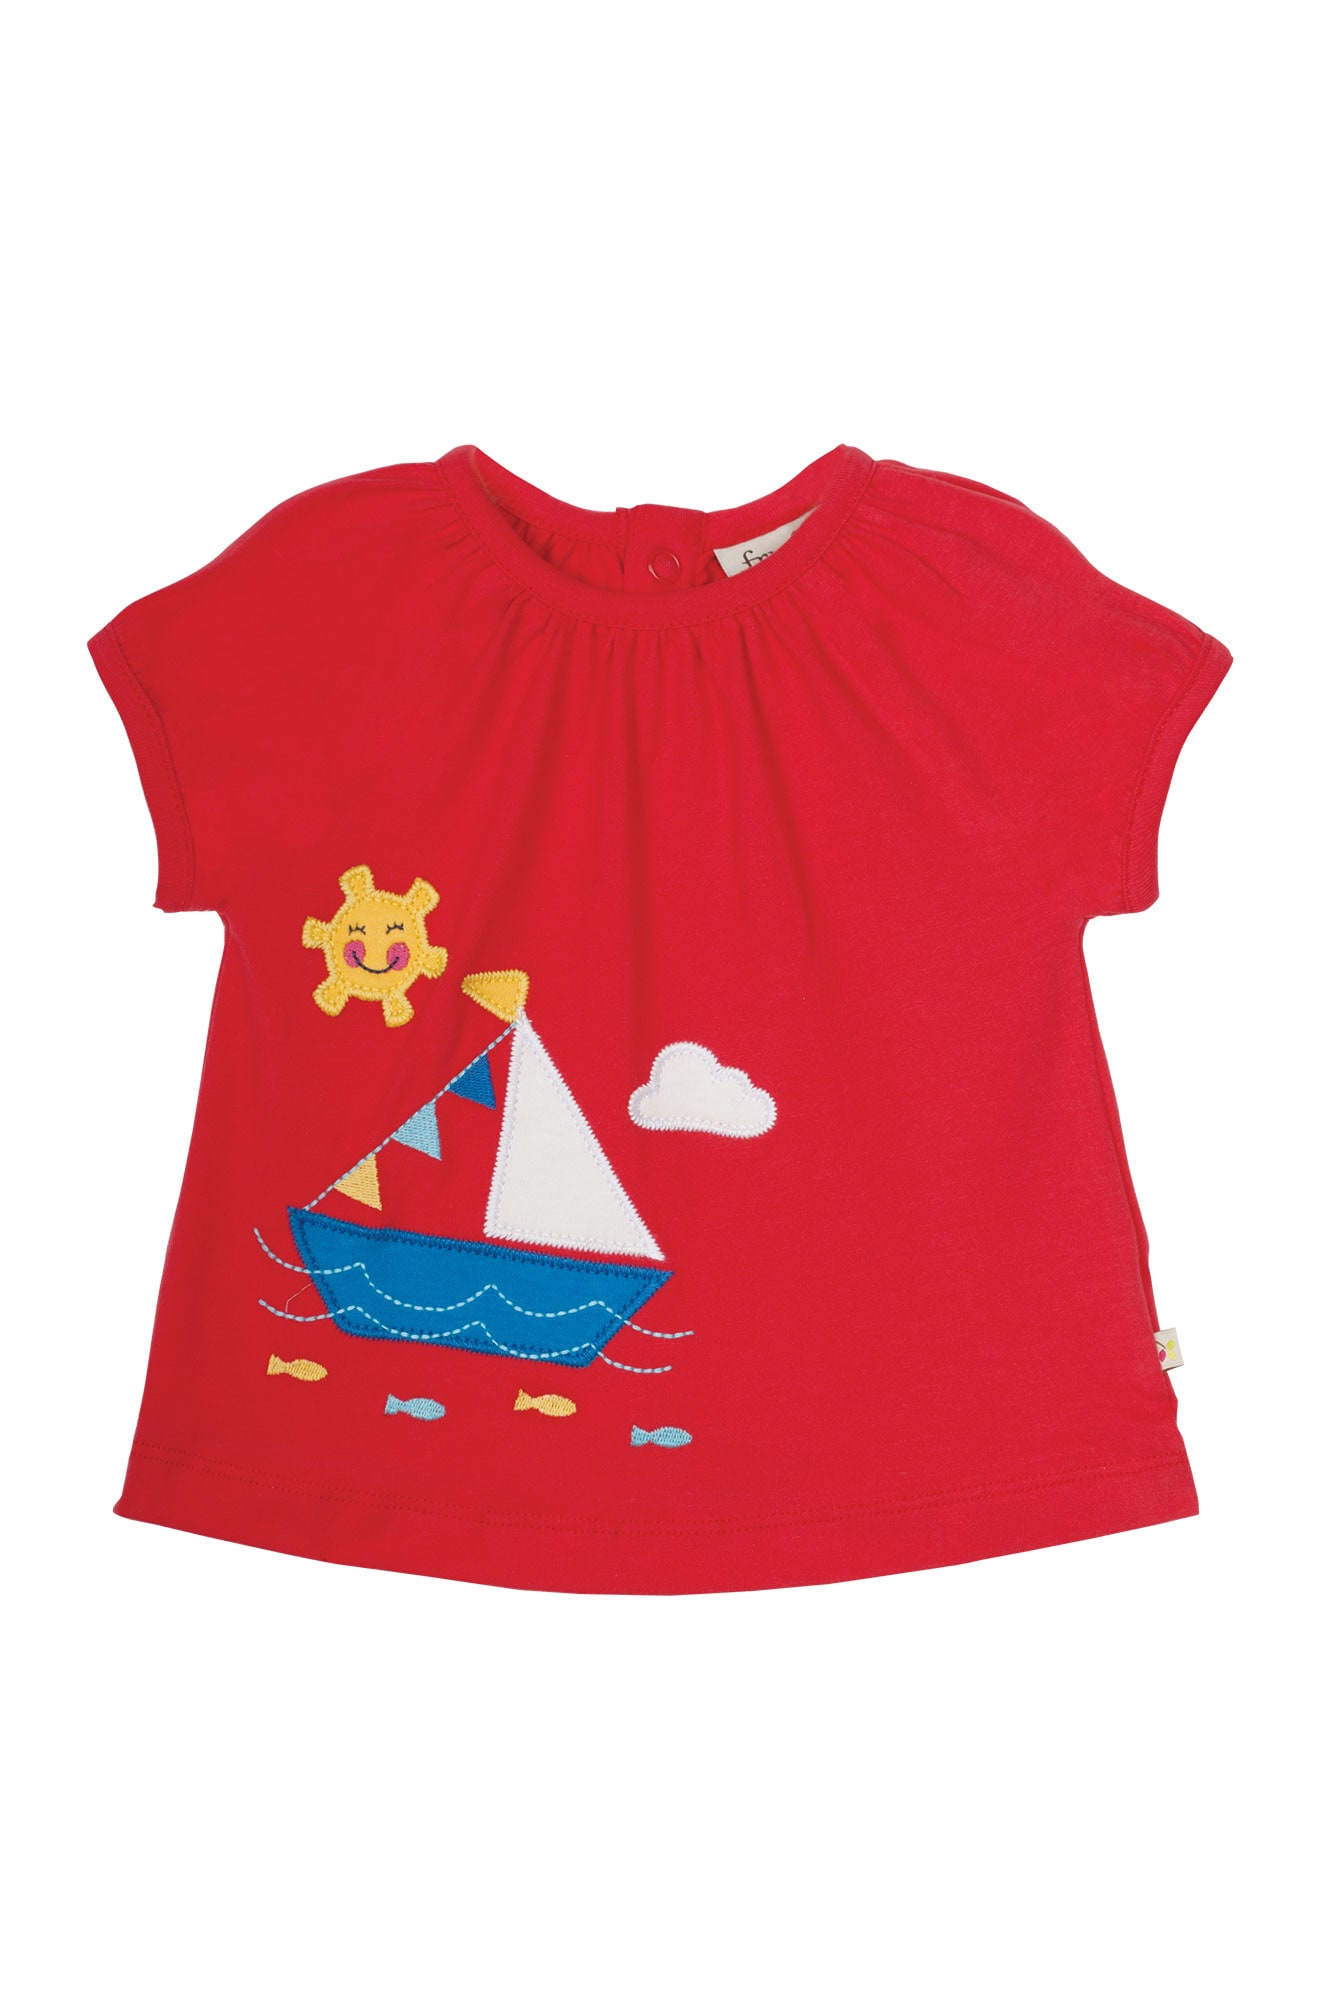 Stockists of Amelia Applique Top